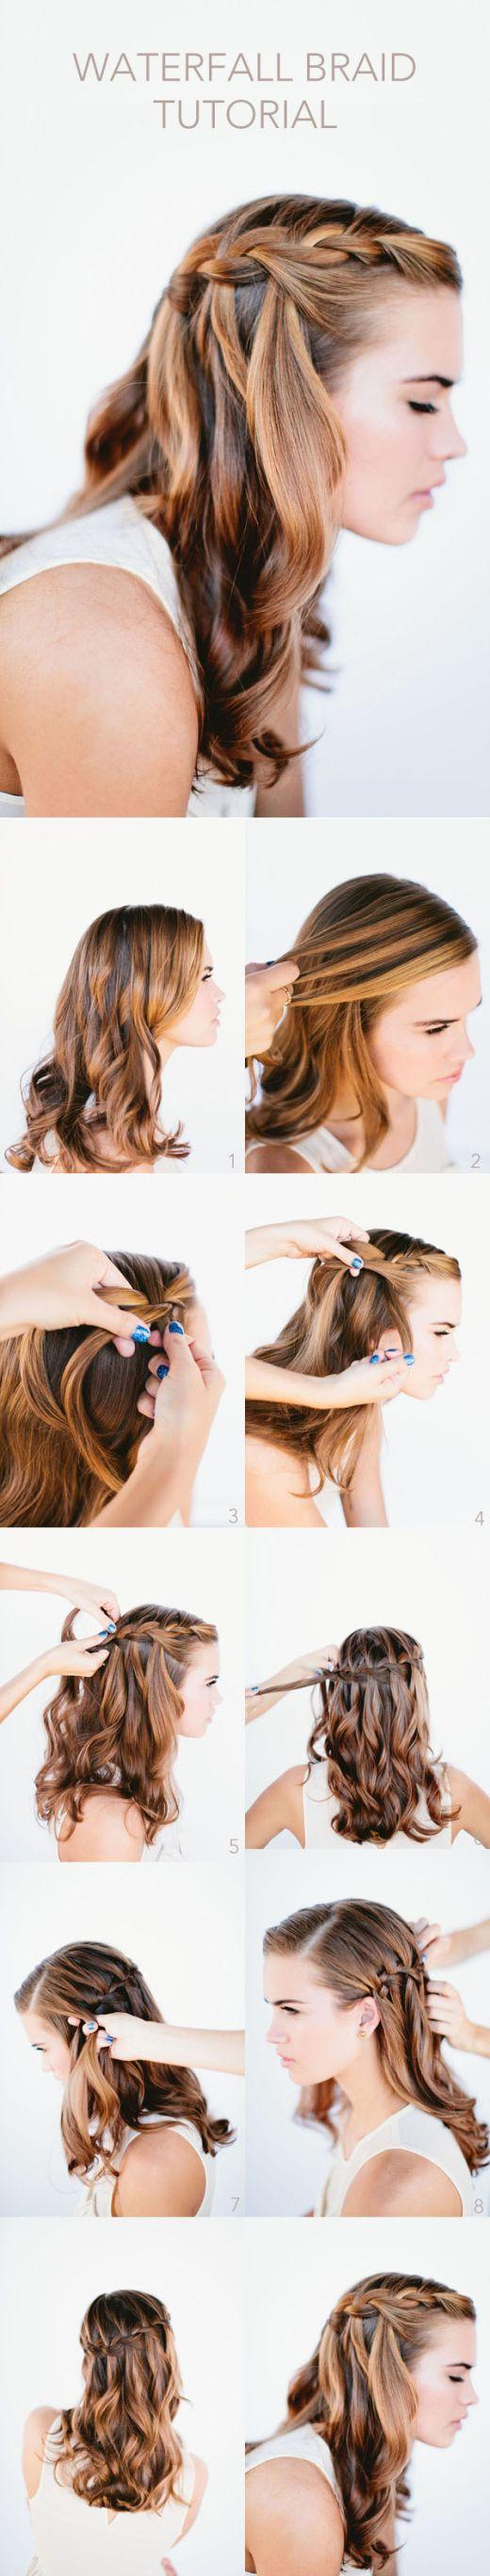 زفاف - 8 GORGEOUS Long Hair Tutorials You Should Steal From Pinterest